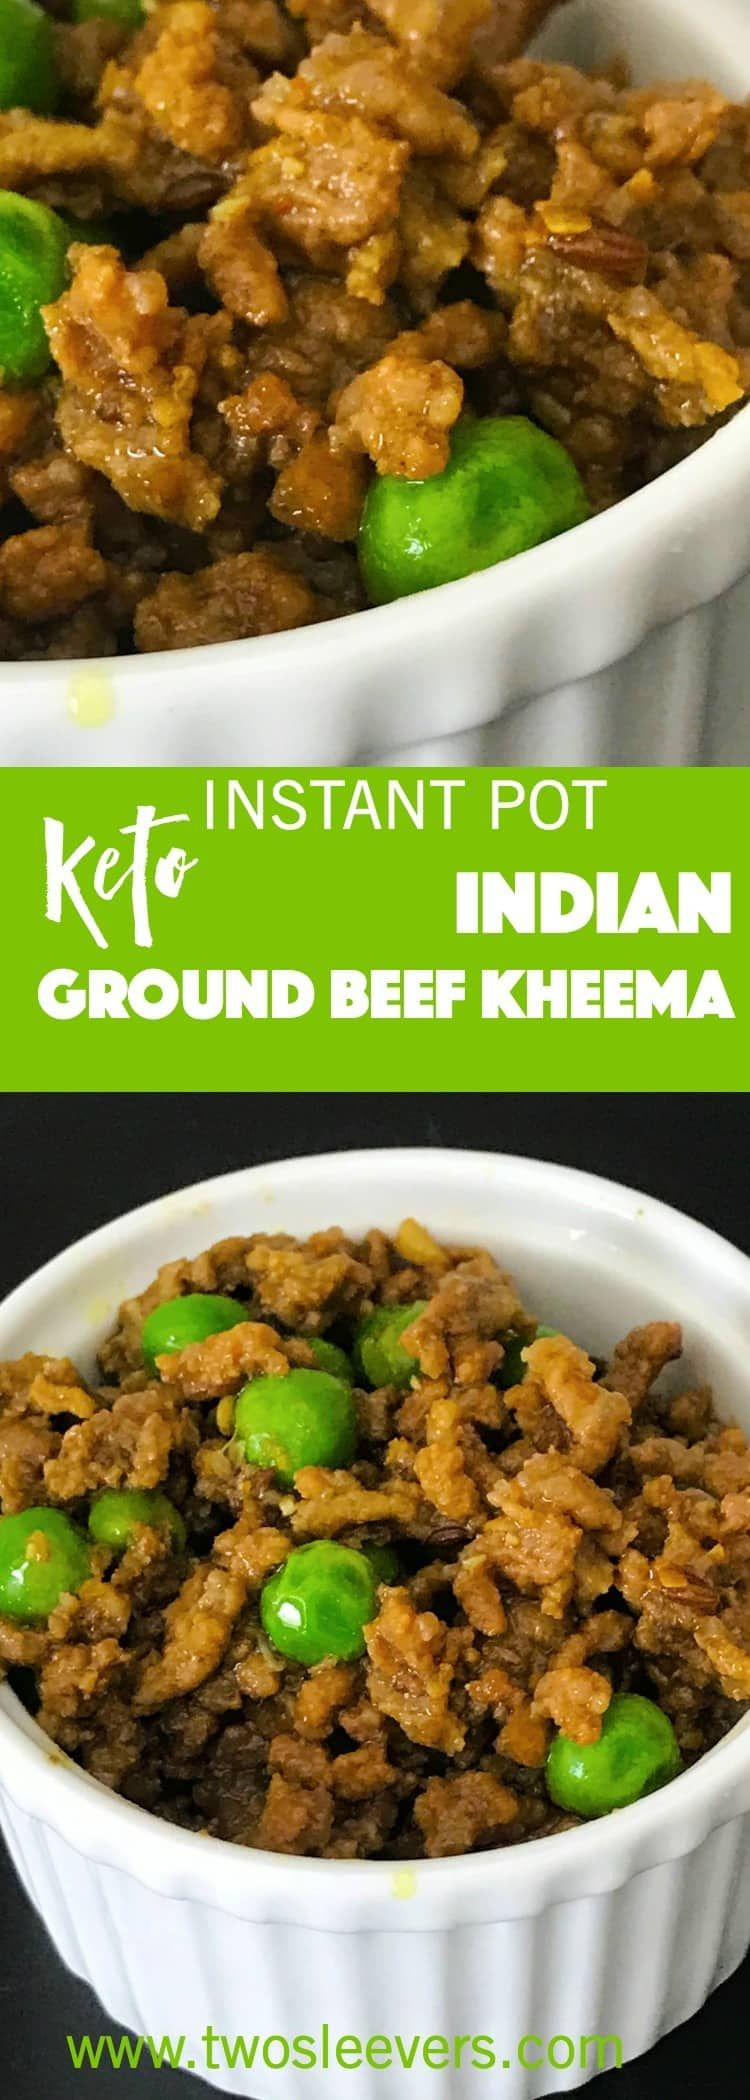 This Instant Pot Keto Indian Kheema recipe is an easy family-friendly keto dish that's gluten-free, keto, paleo and done in under 30 minutes. via @twosleevers